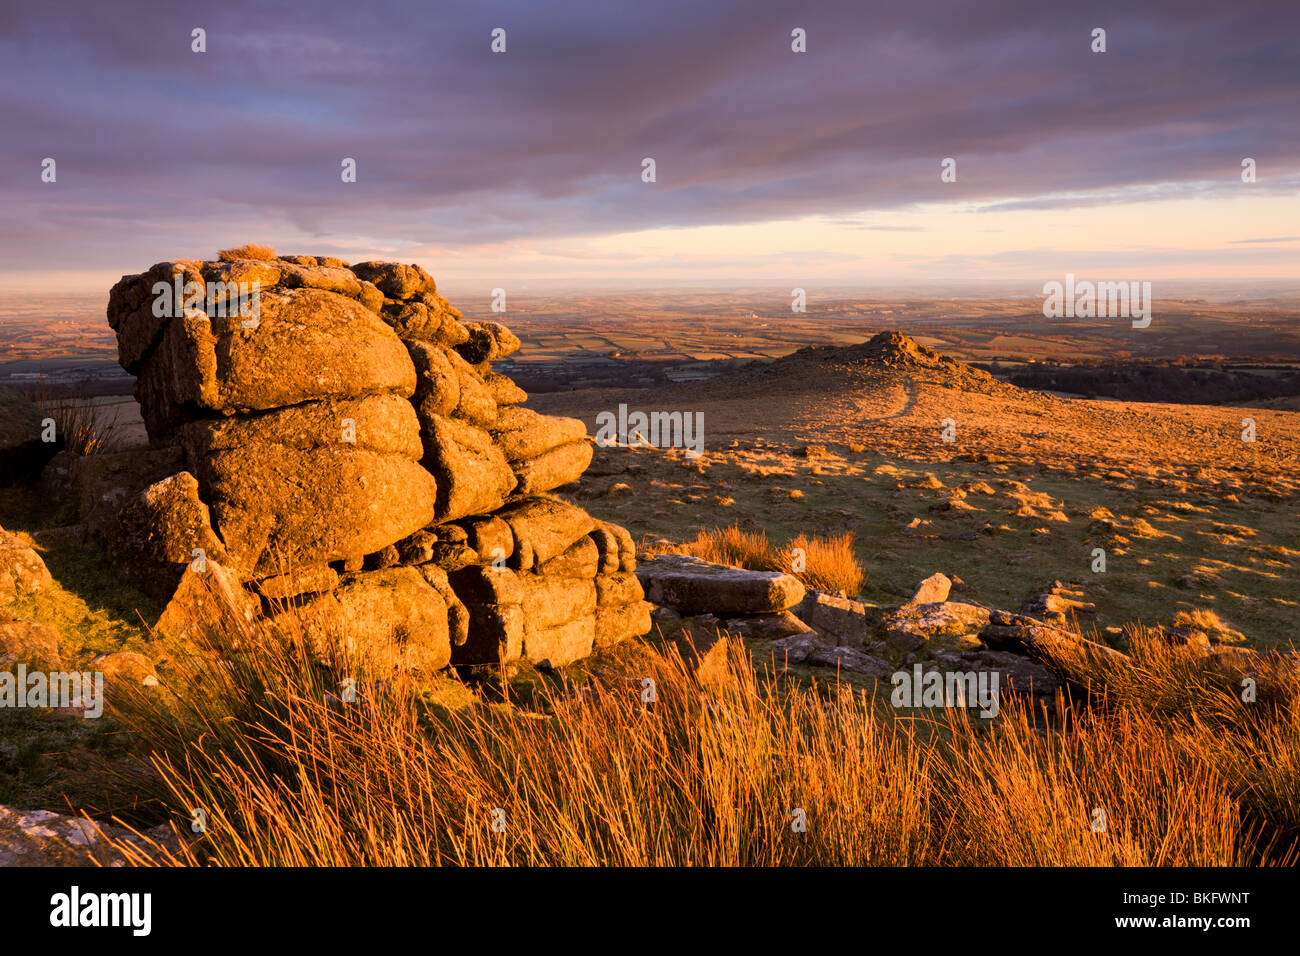 Golden sunshine glows against the granite outcrops at Belstone Tor, Dartmoor National Park, Devon, England. - Stock Image